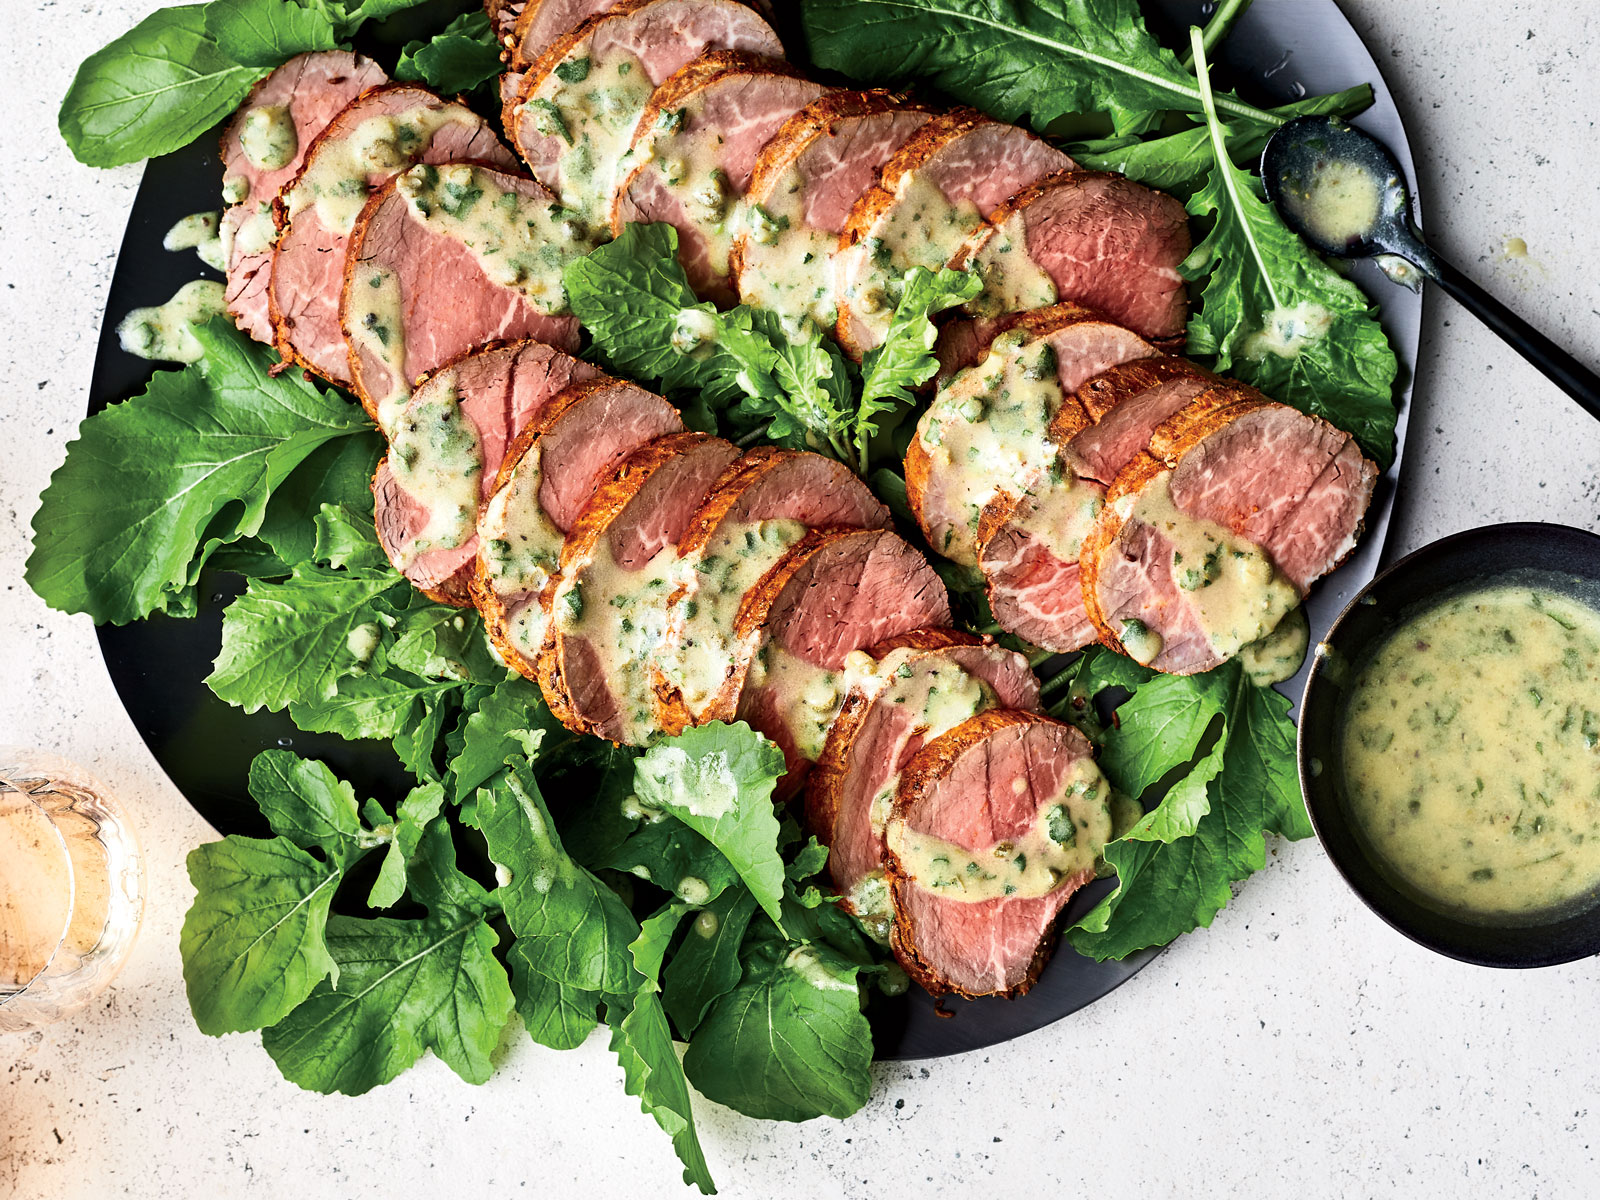 Spice Crusted Beef Tenderloin with Caper Vinaigrette